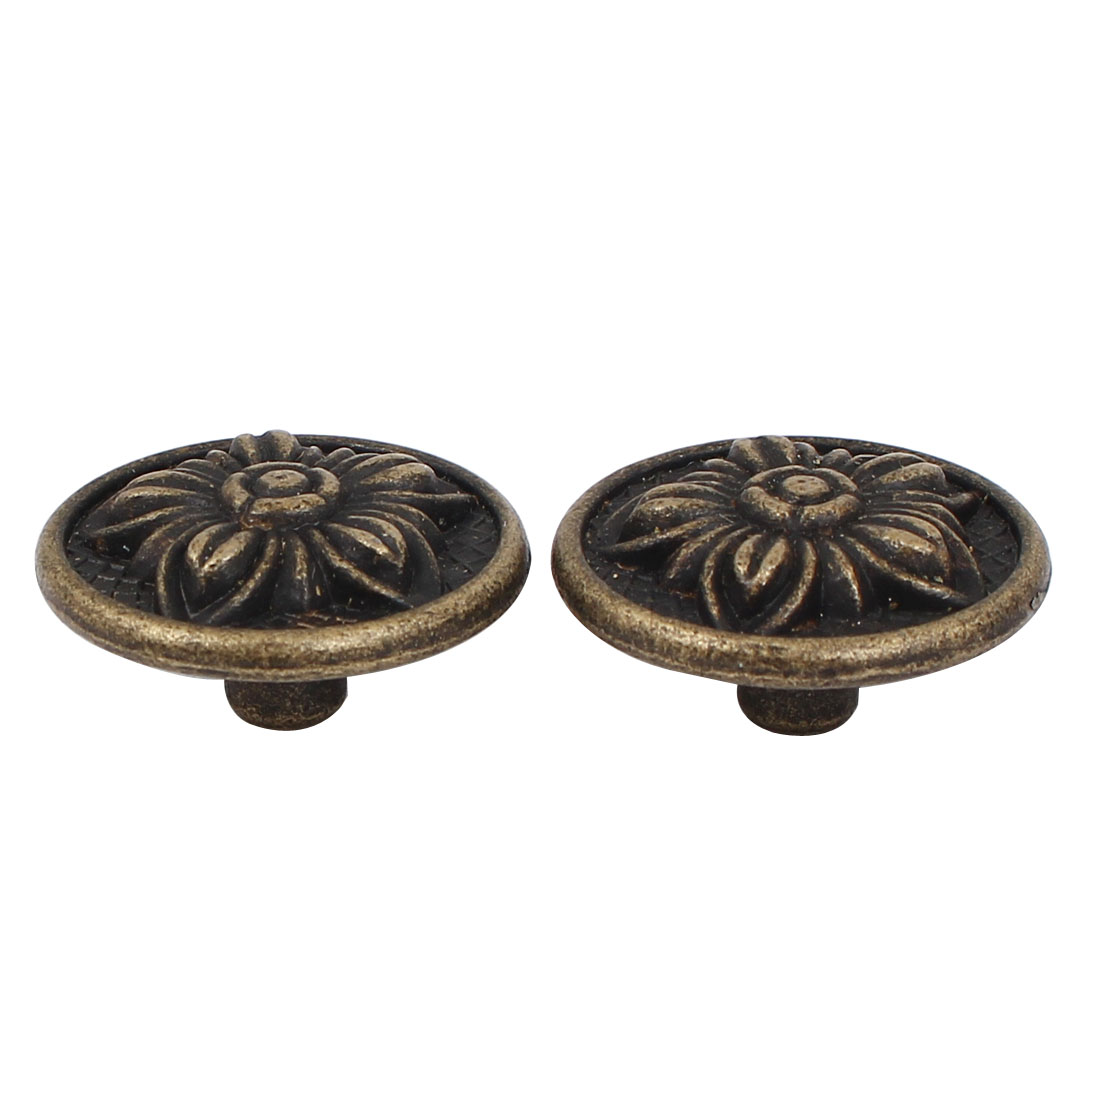 Door Drawer Vintage Style Pull Handle Knob Bronze Tone 30mmx16mm 2pcs